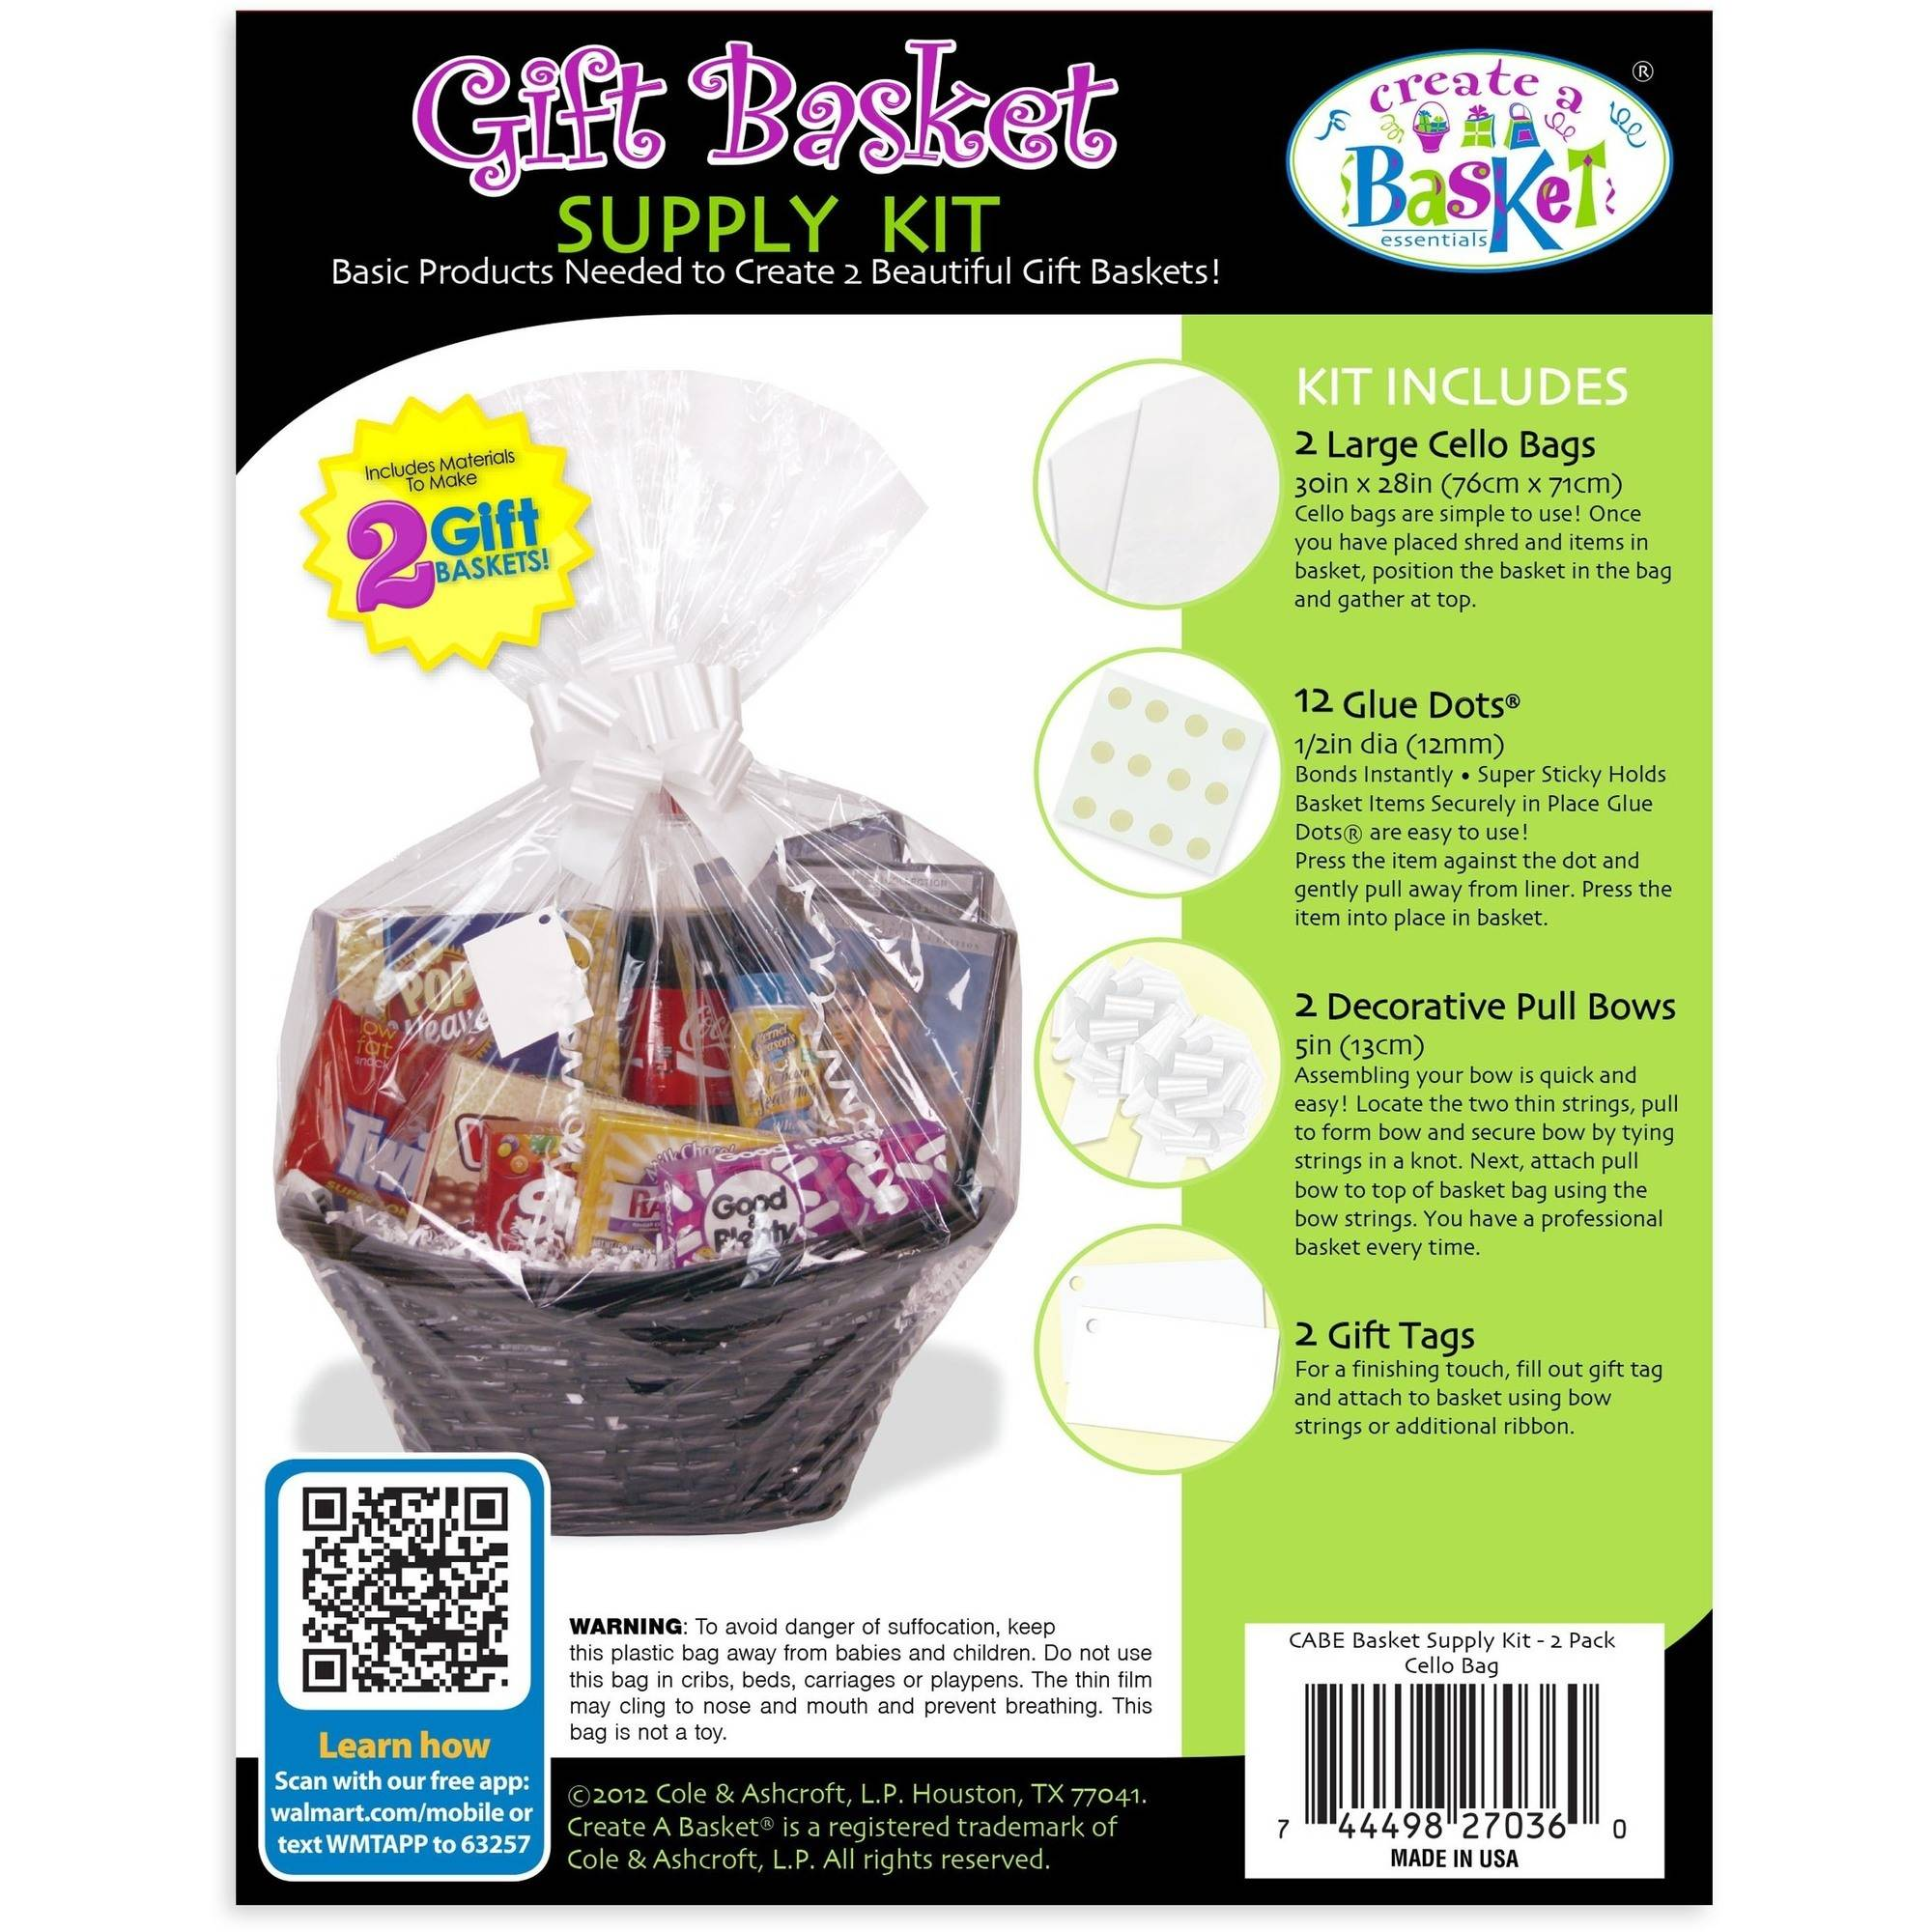 Create-A-Basket Essentials Gift Basket Supply Kit, White